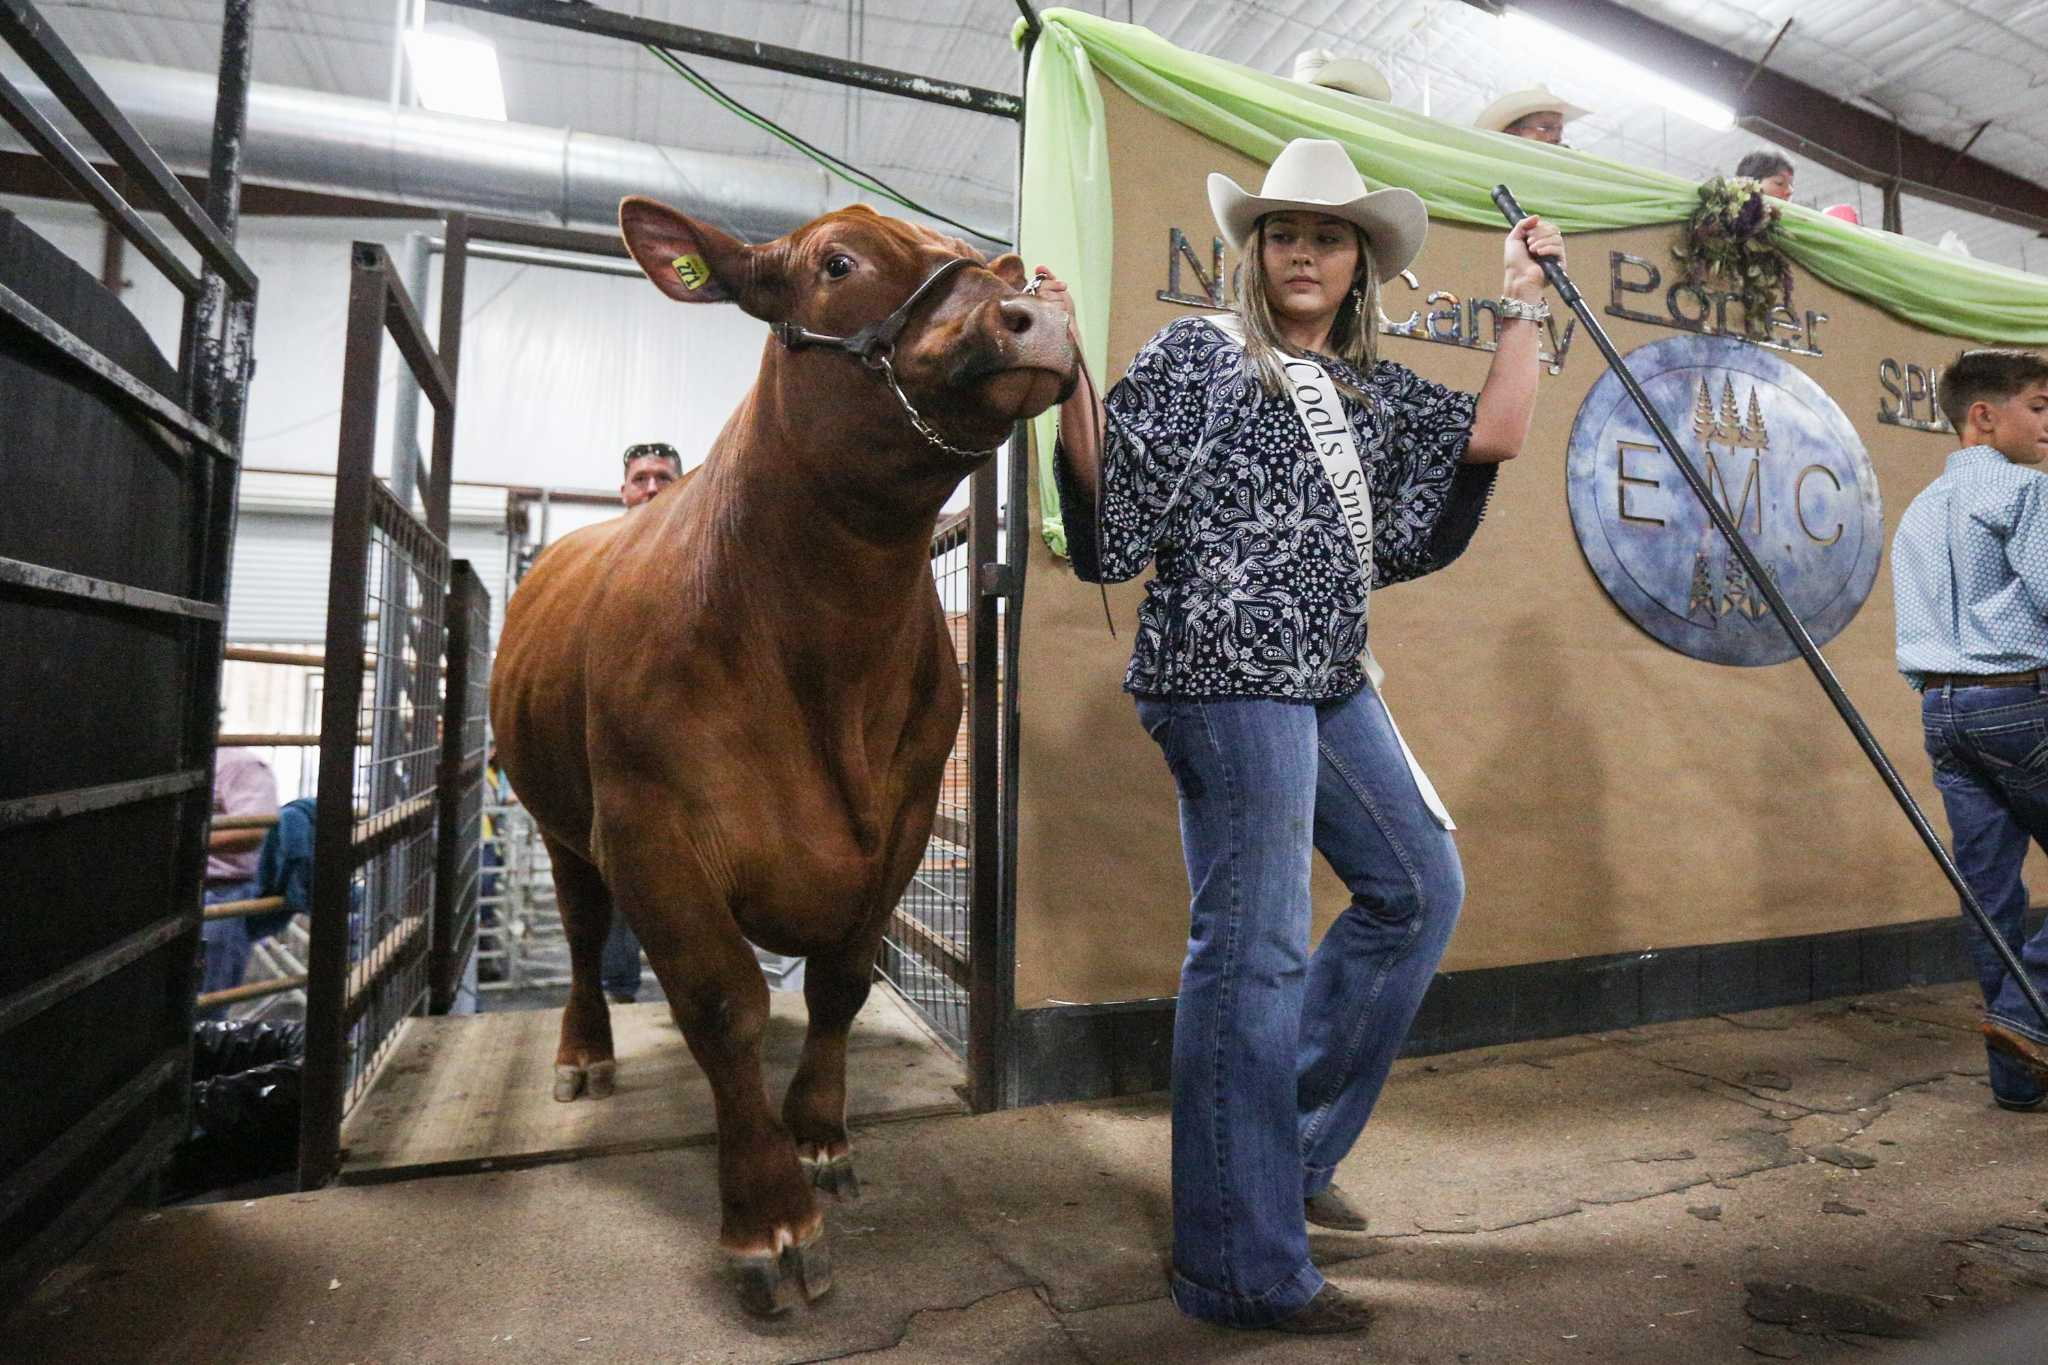 East Montgomery County Fair And Rodeo Kicks Off This Week